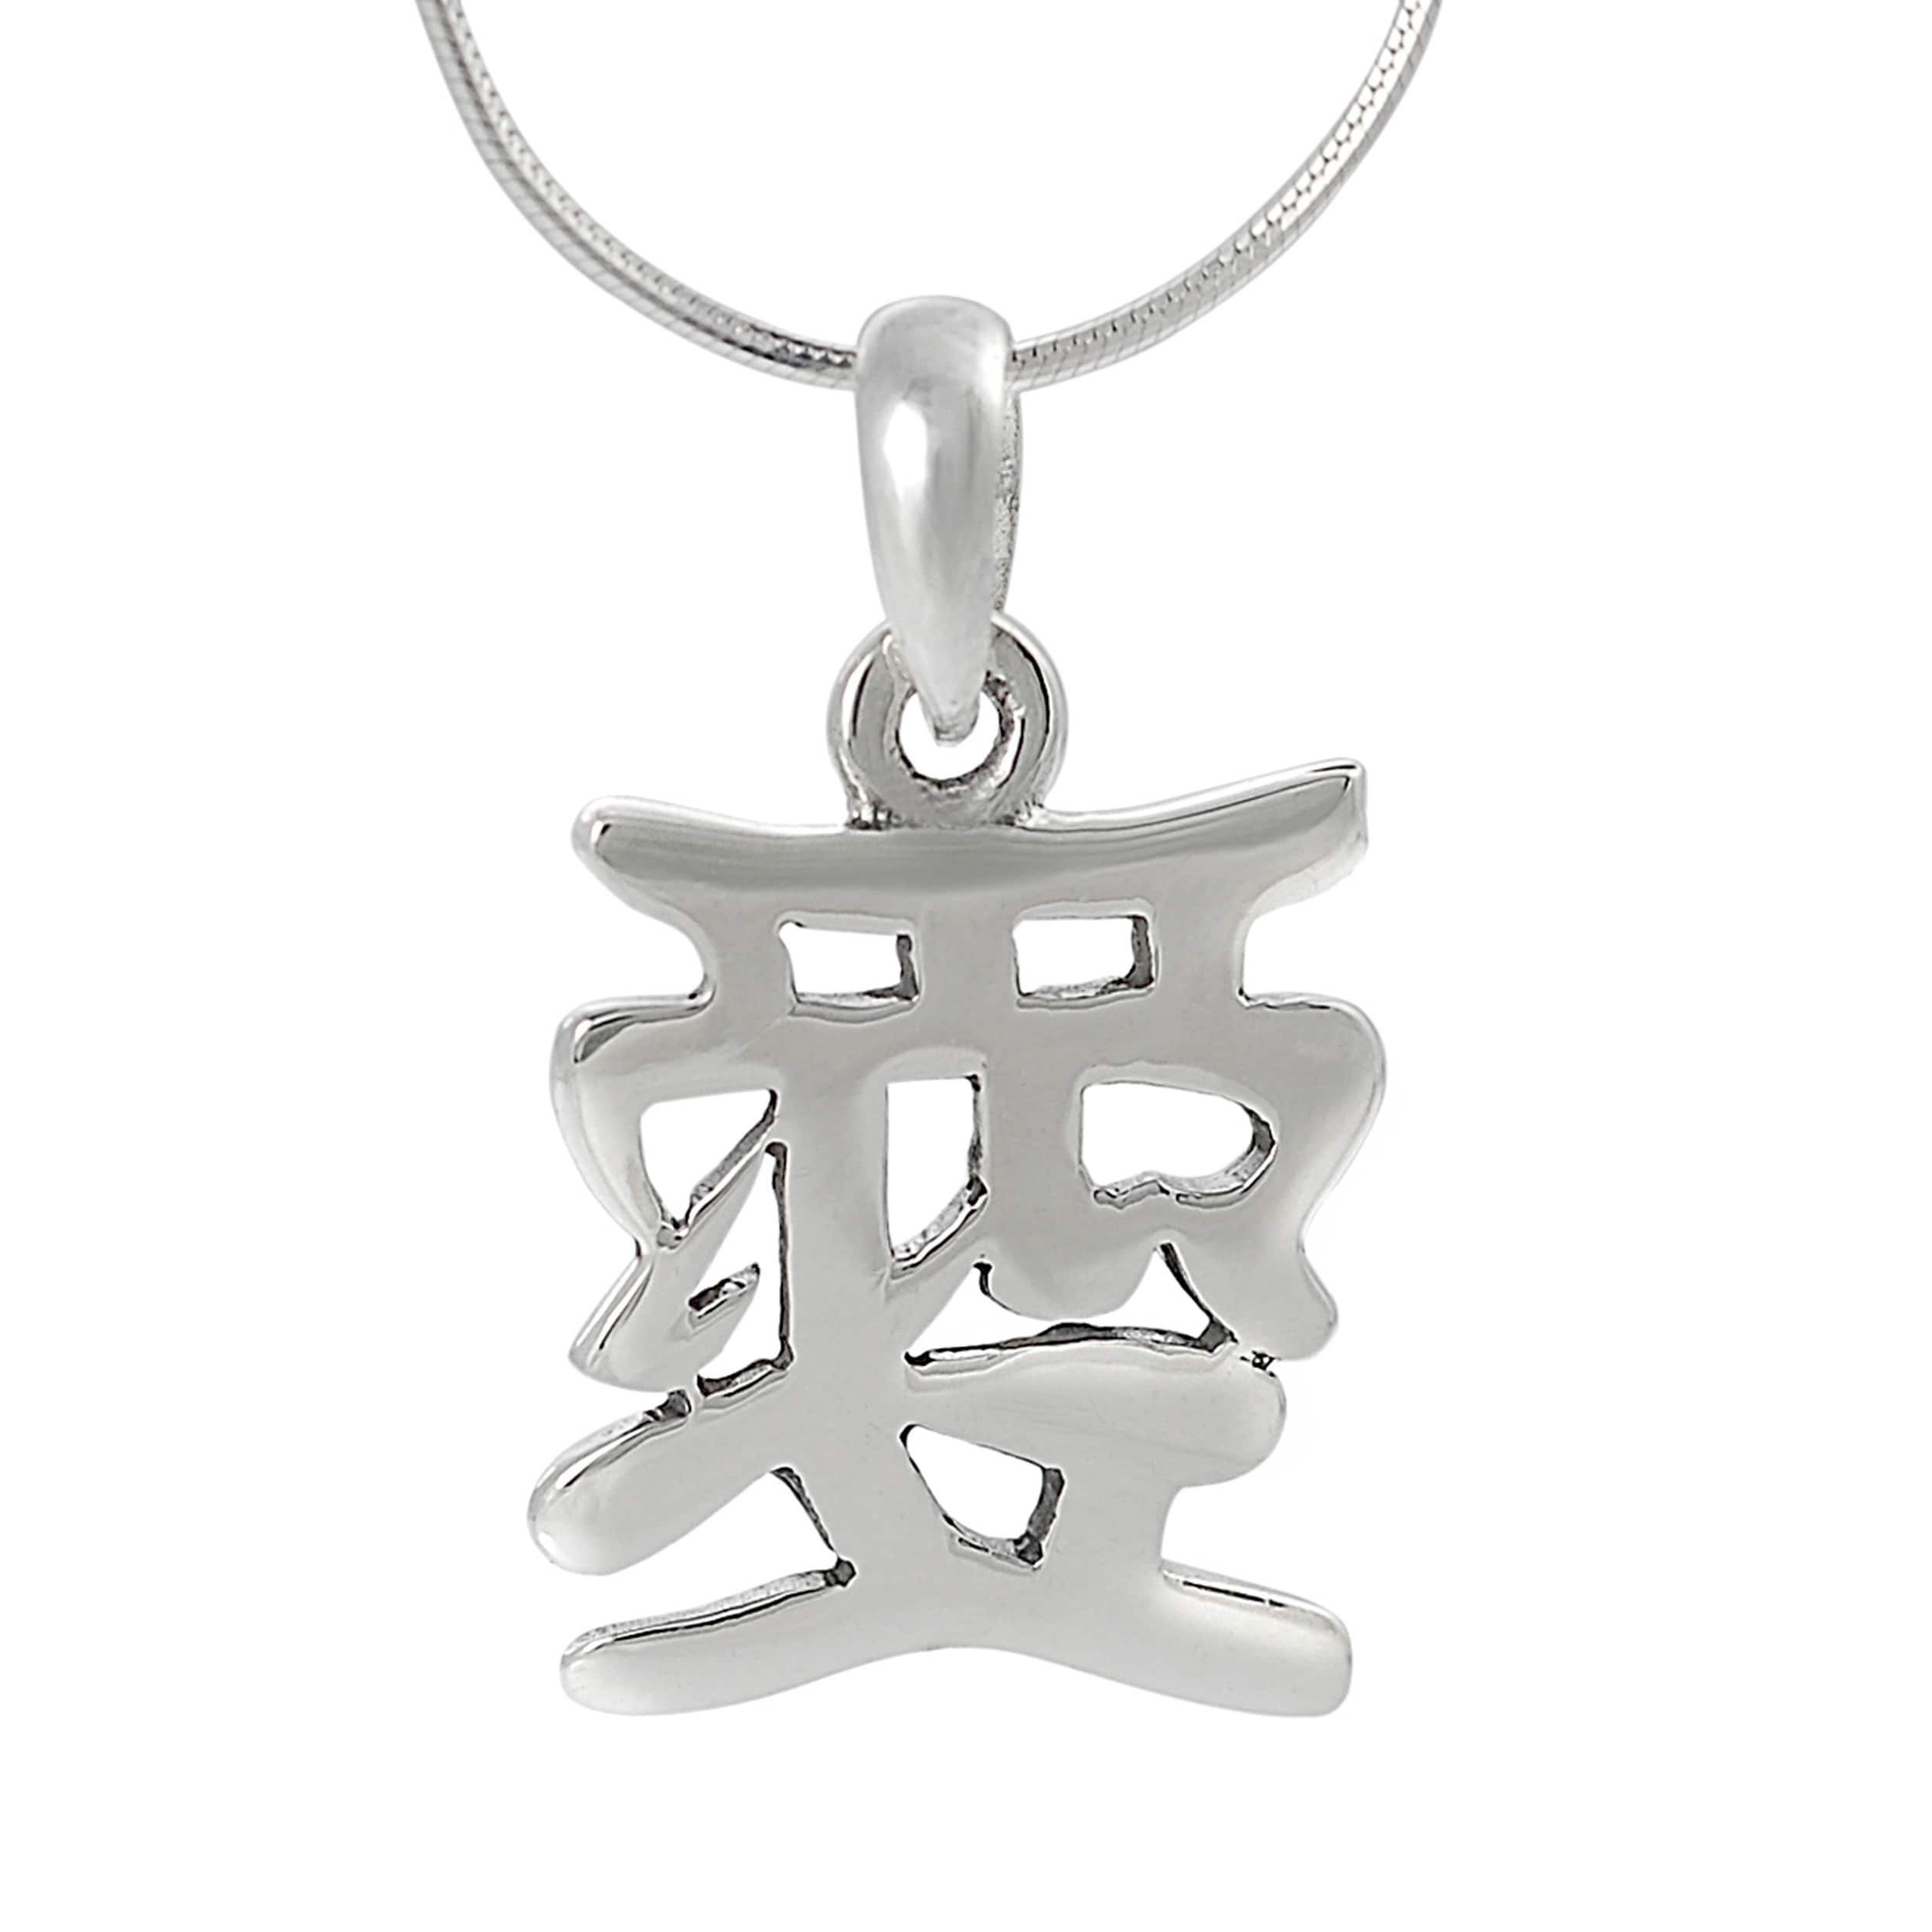 Journee collection sterling chinese character pendant necklace journee collection sterling chinese character pendant necklace aloadofball Images